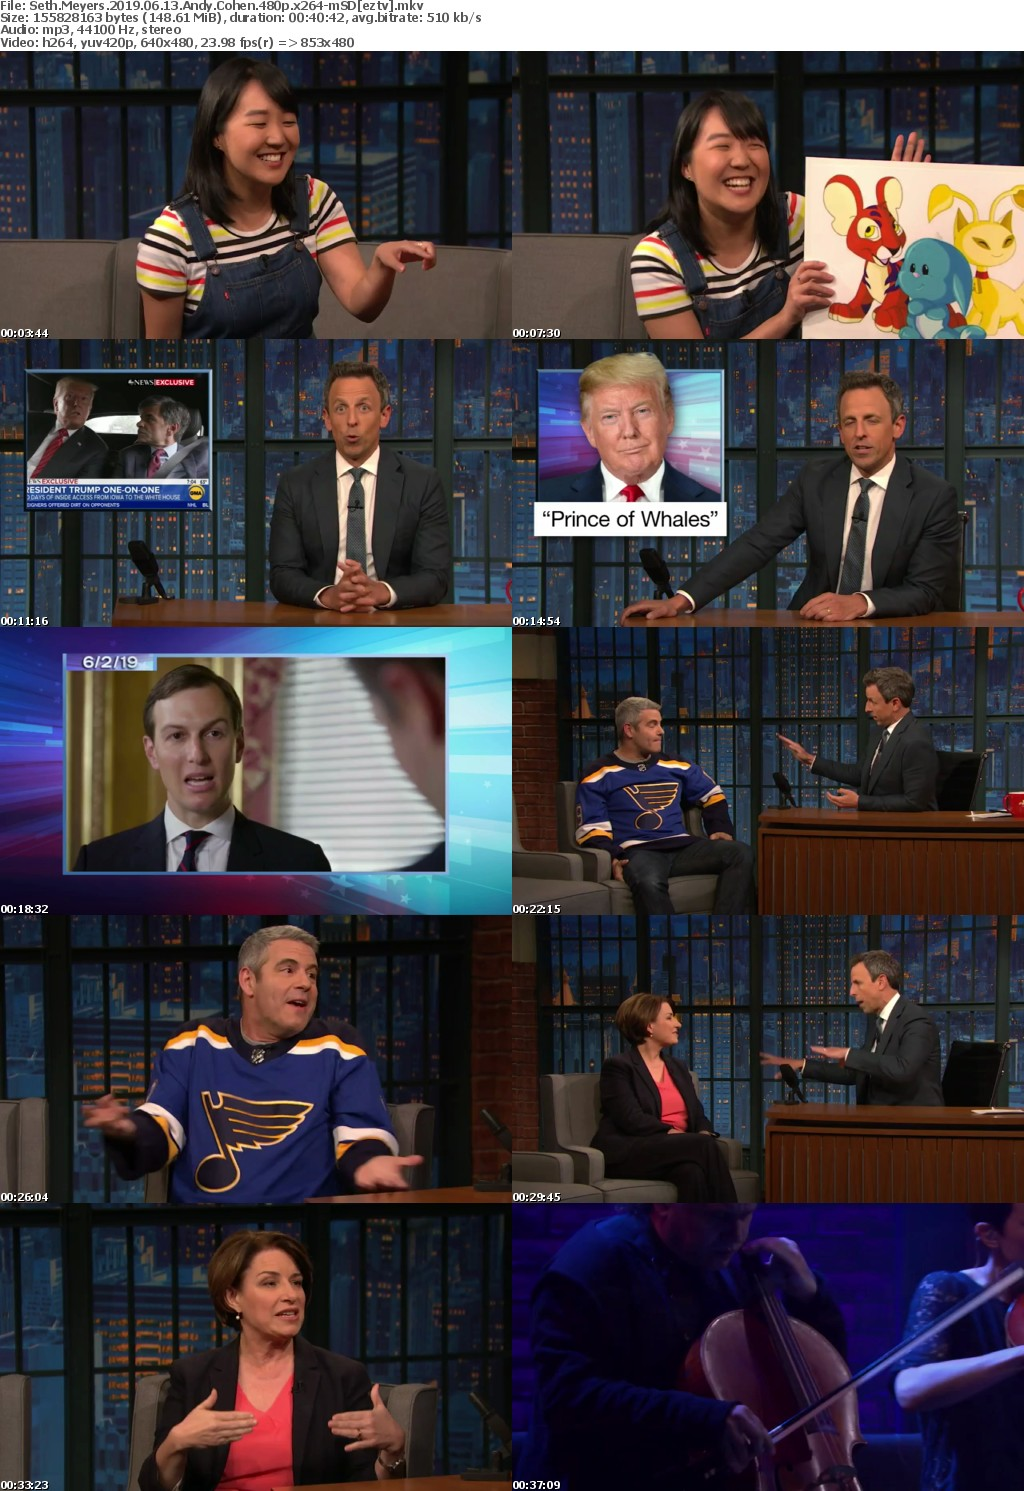 Seth Meyers 2019 06 13 Andy Cohen 480p x264-mSD